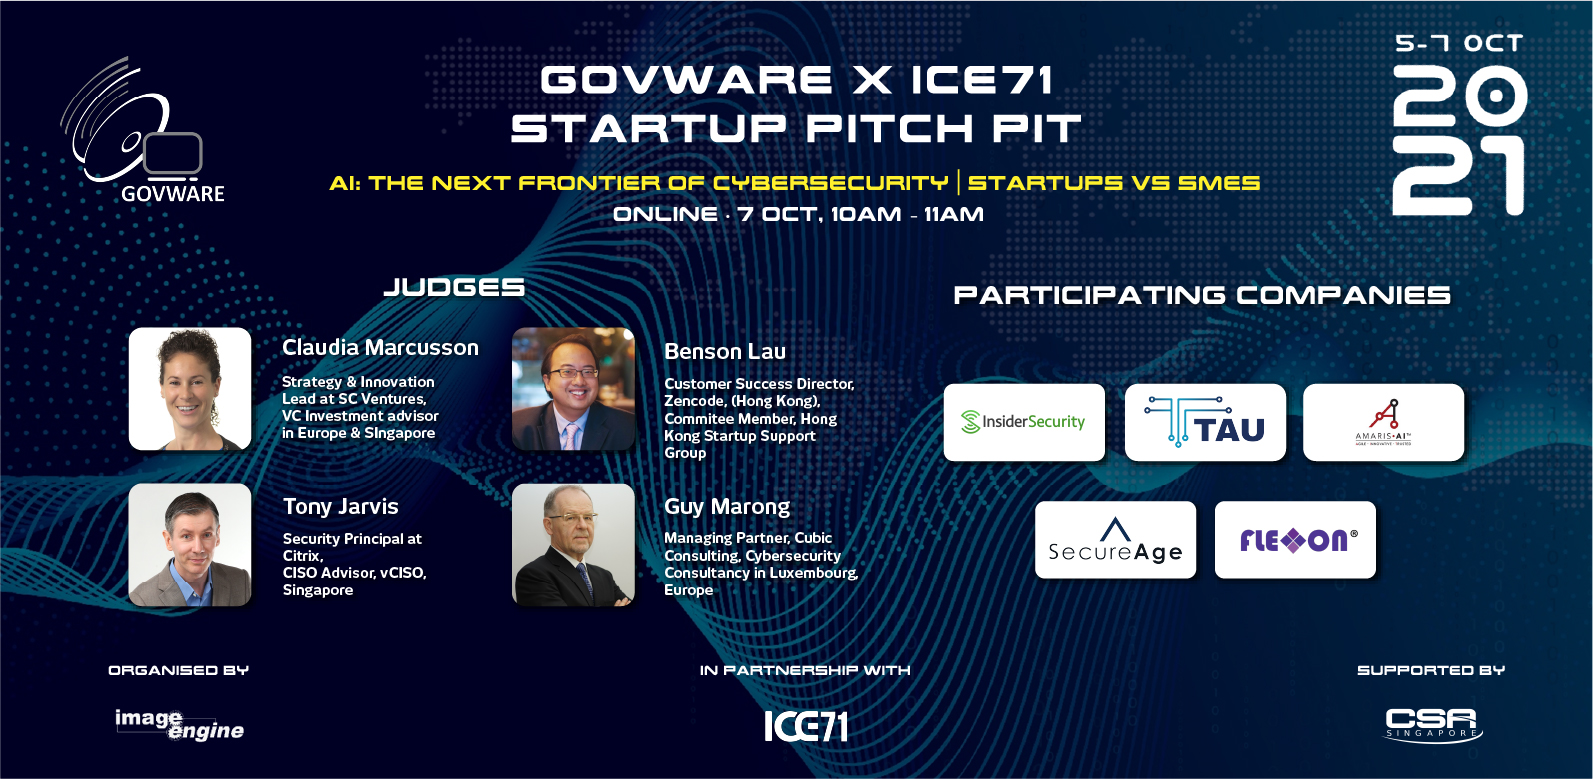 GovWare x ICE71 Startup Pitch Pit 2021